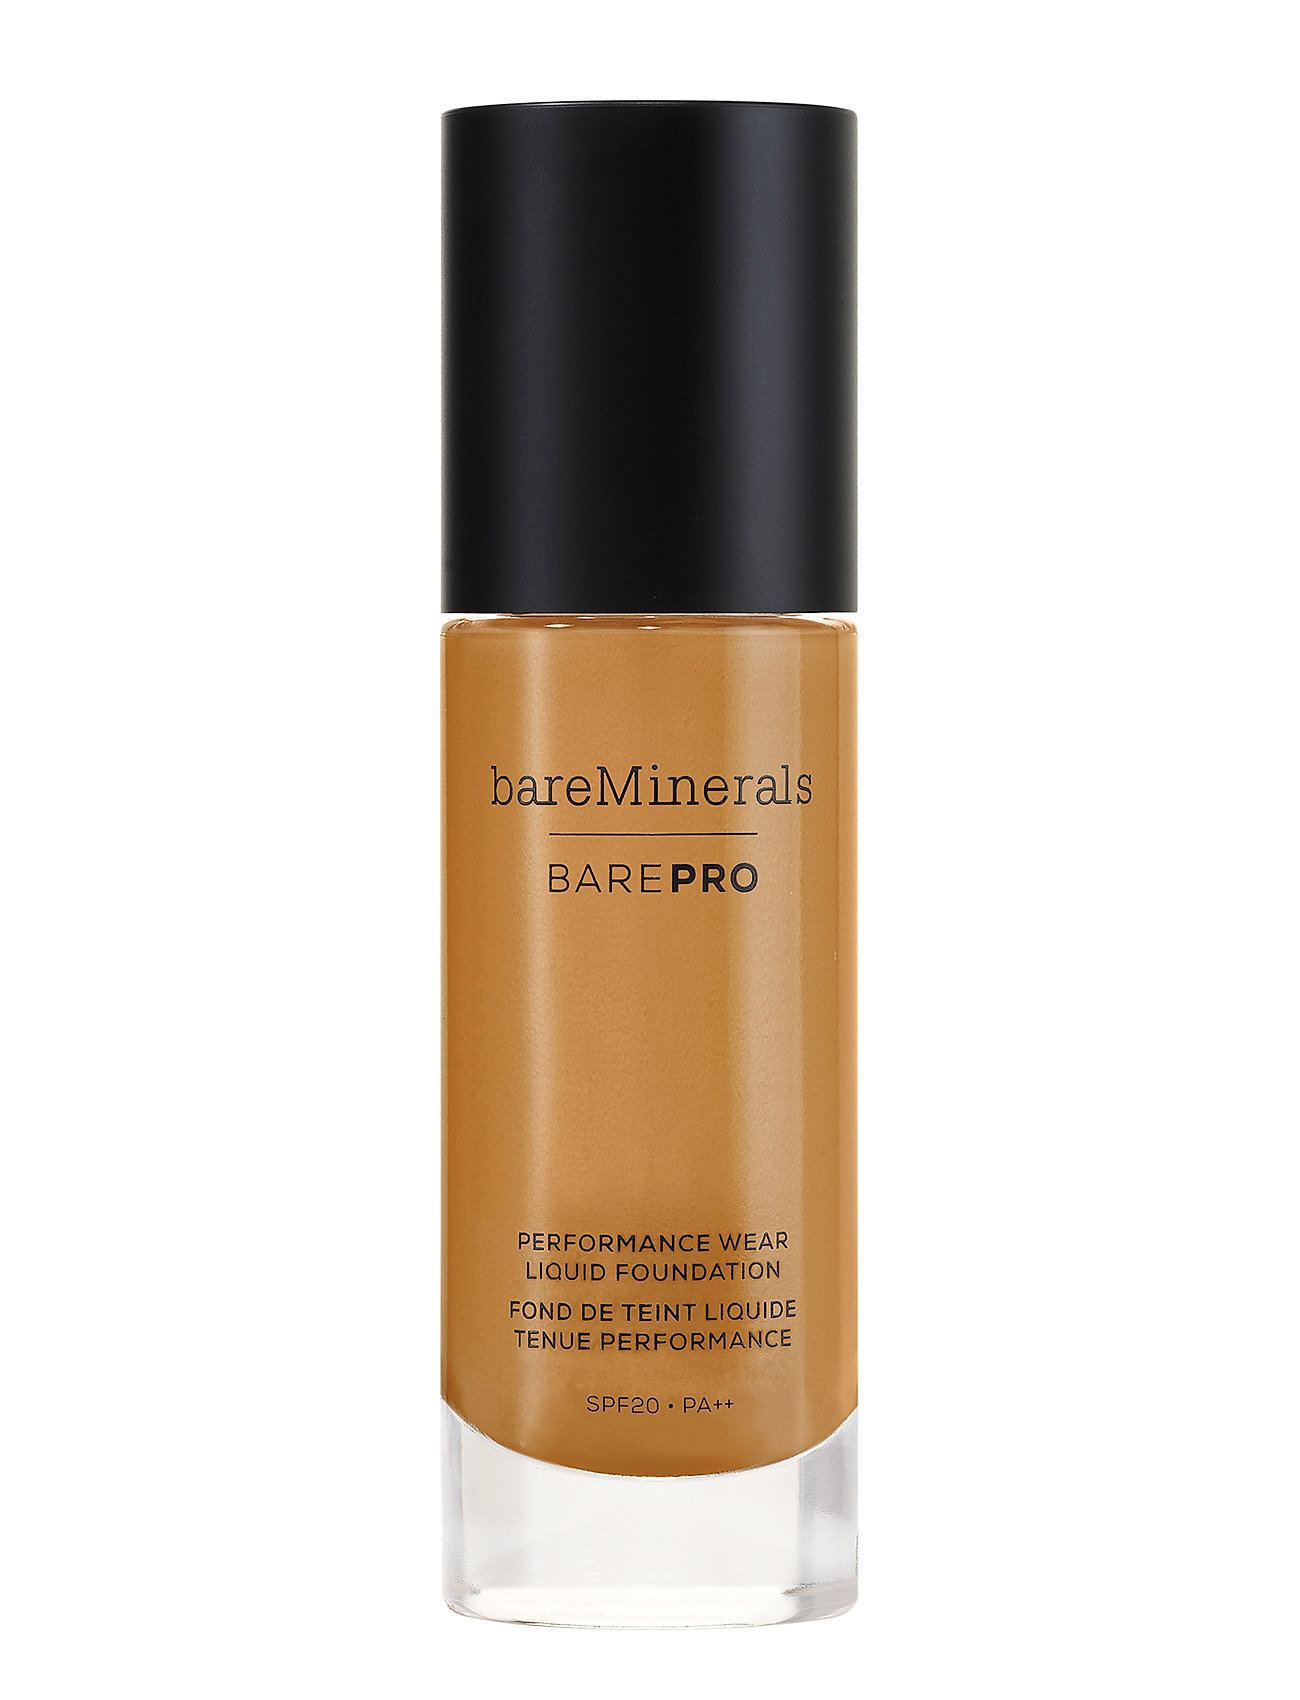 Image of Barepro Performance Wear Liquid Foundation Spf 20 Foundation Makeup BareMinerals (3067521655)